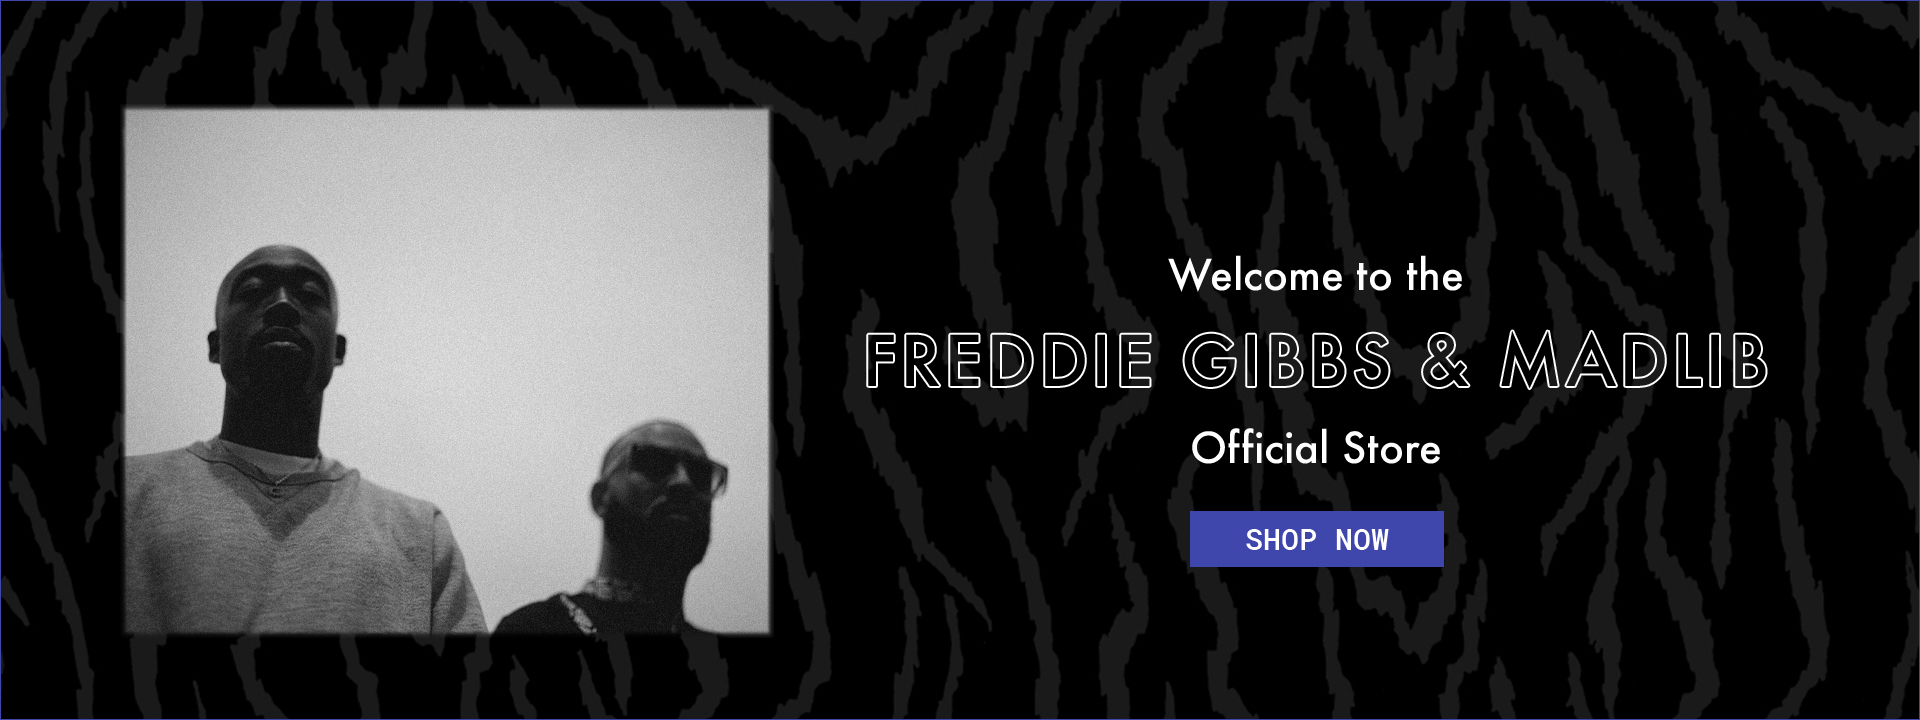 Welcome to the official MadGibbs store